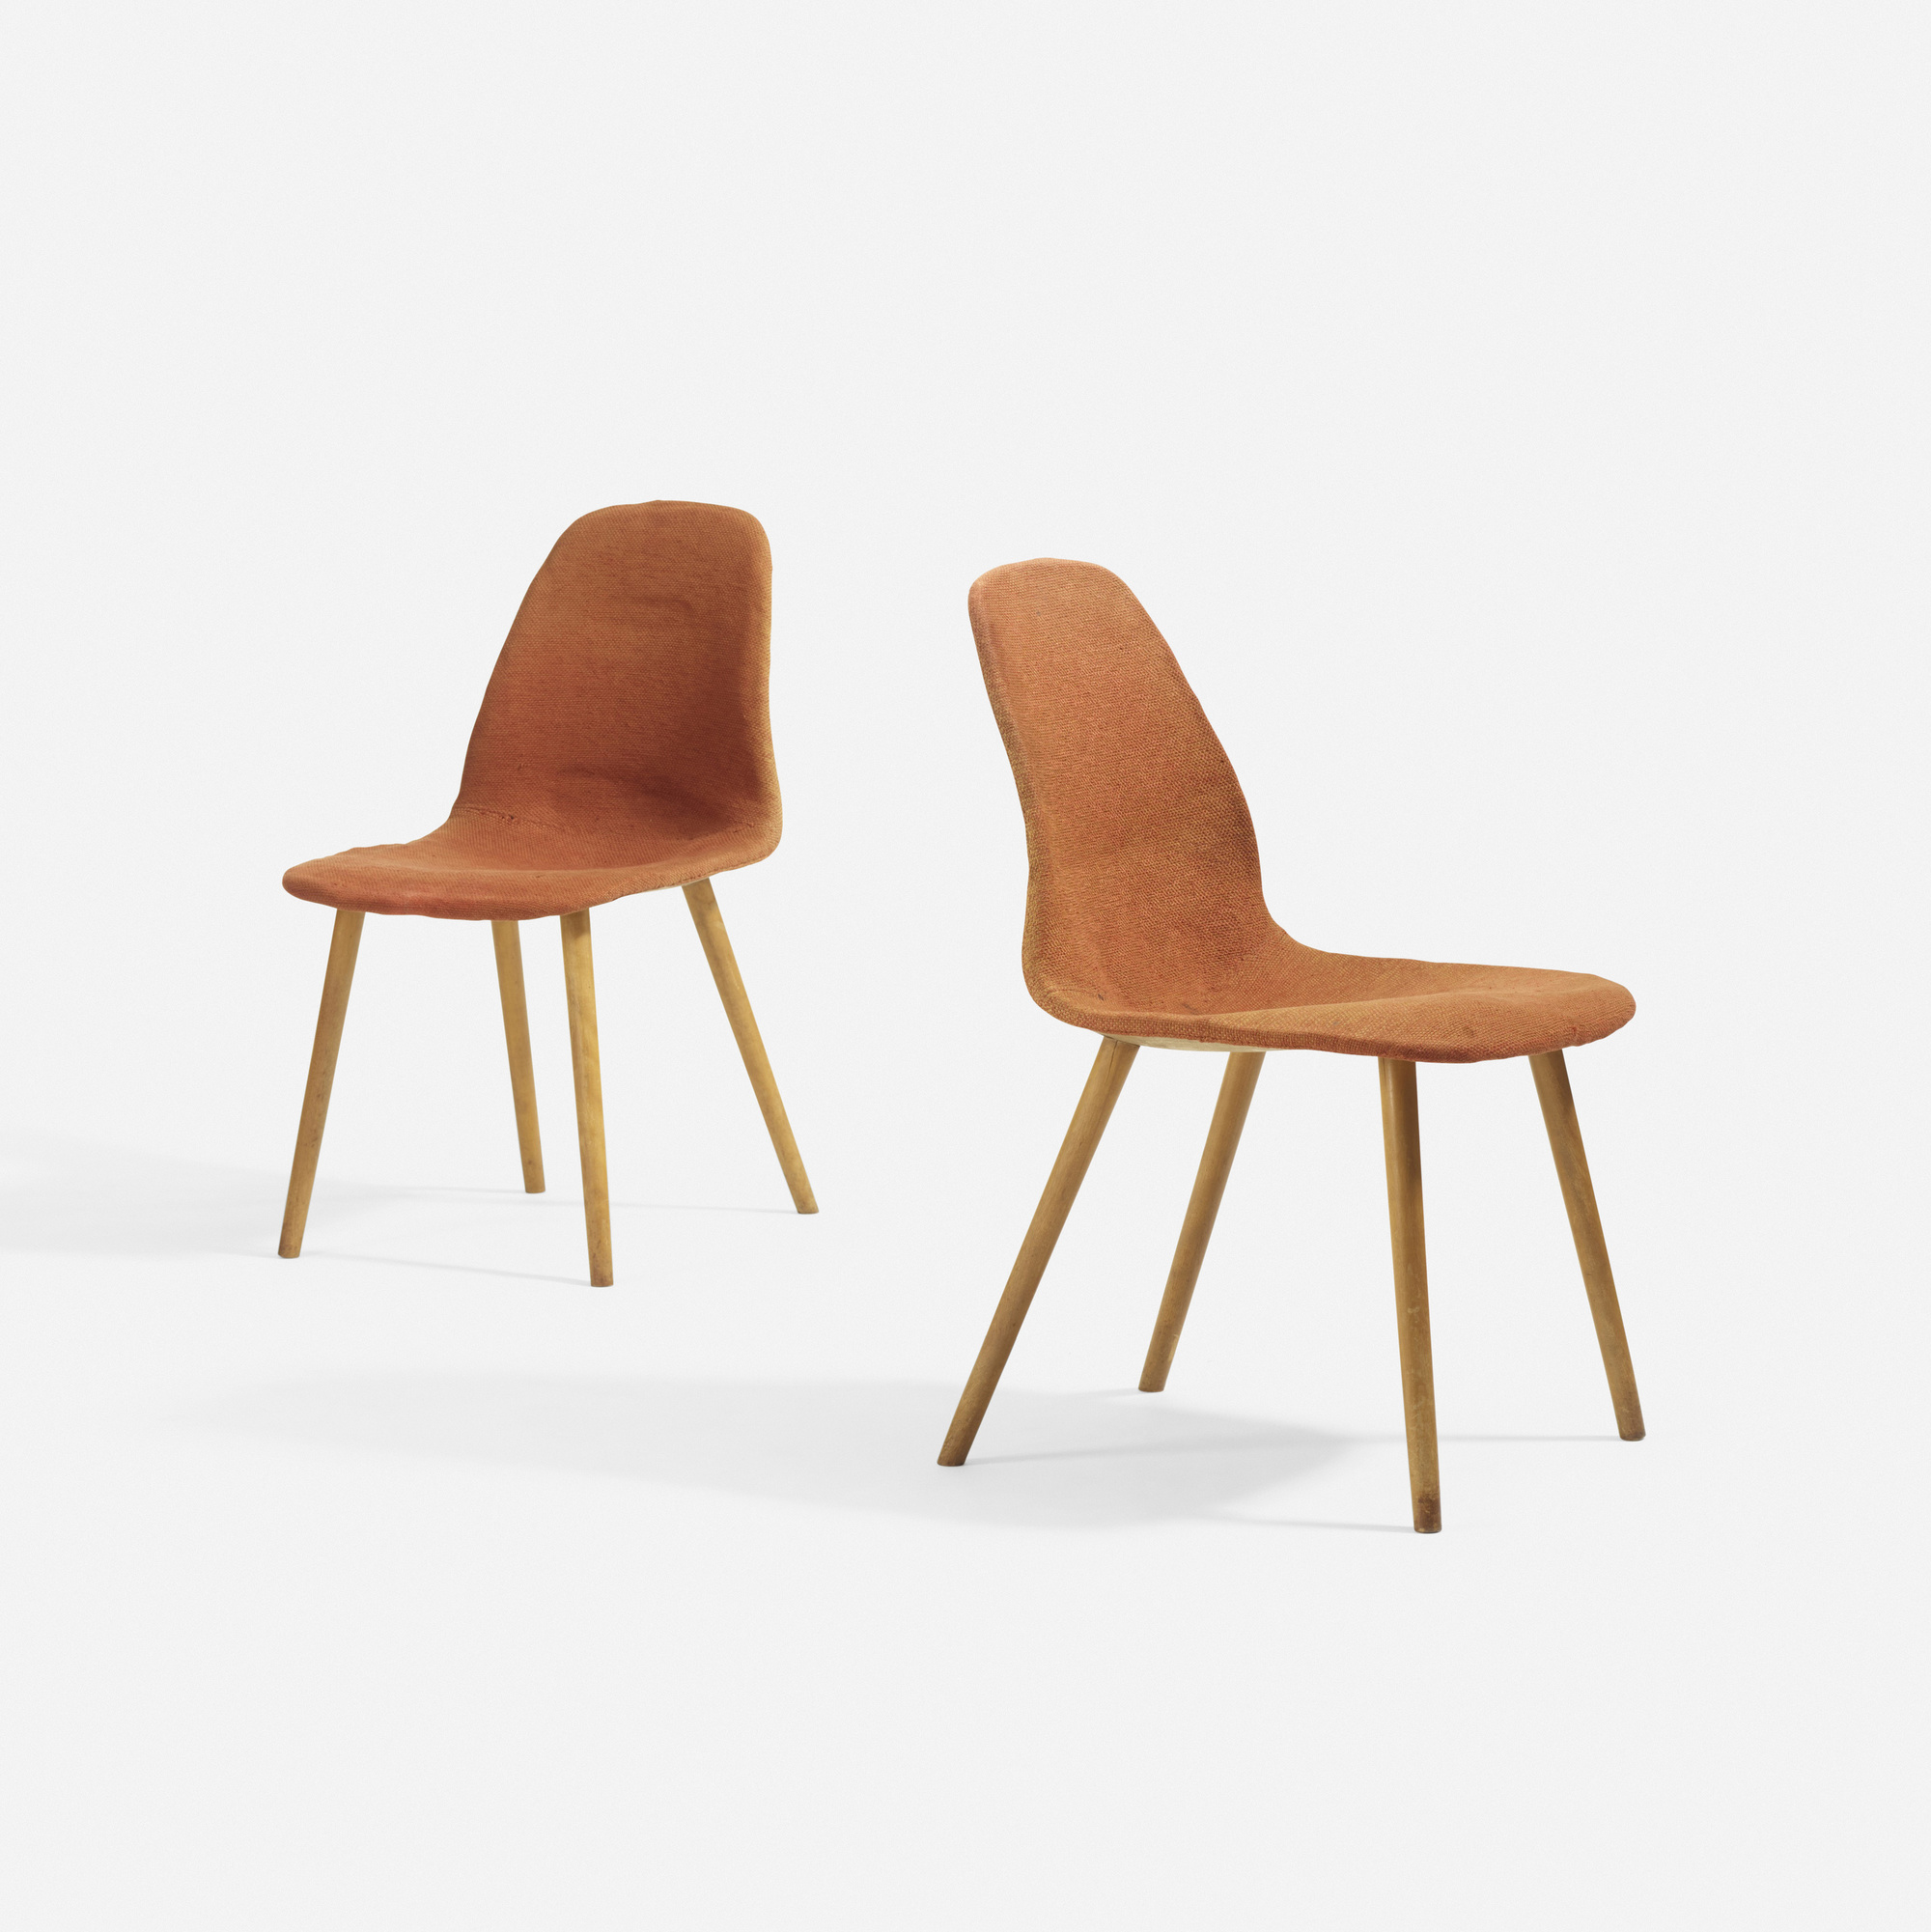 chair design competition 2017 two person carry 15 charles eames and eero saarinen rare pair of chairs